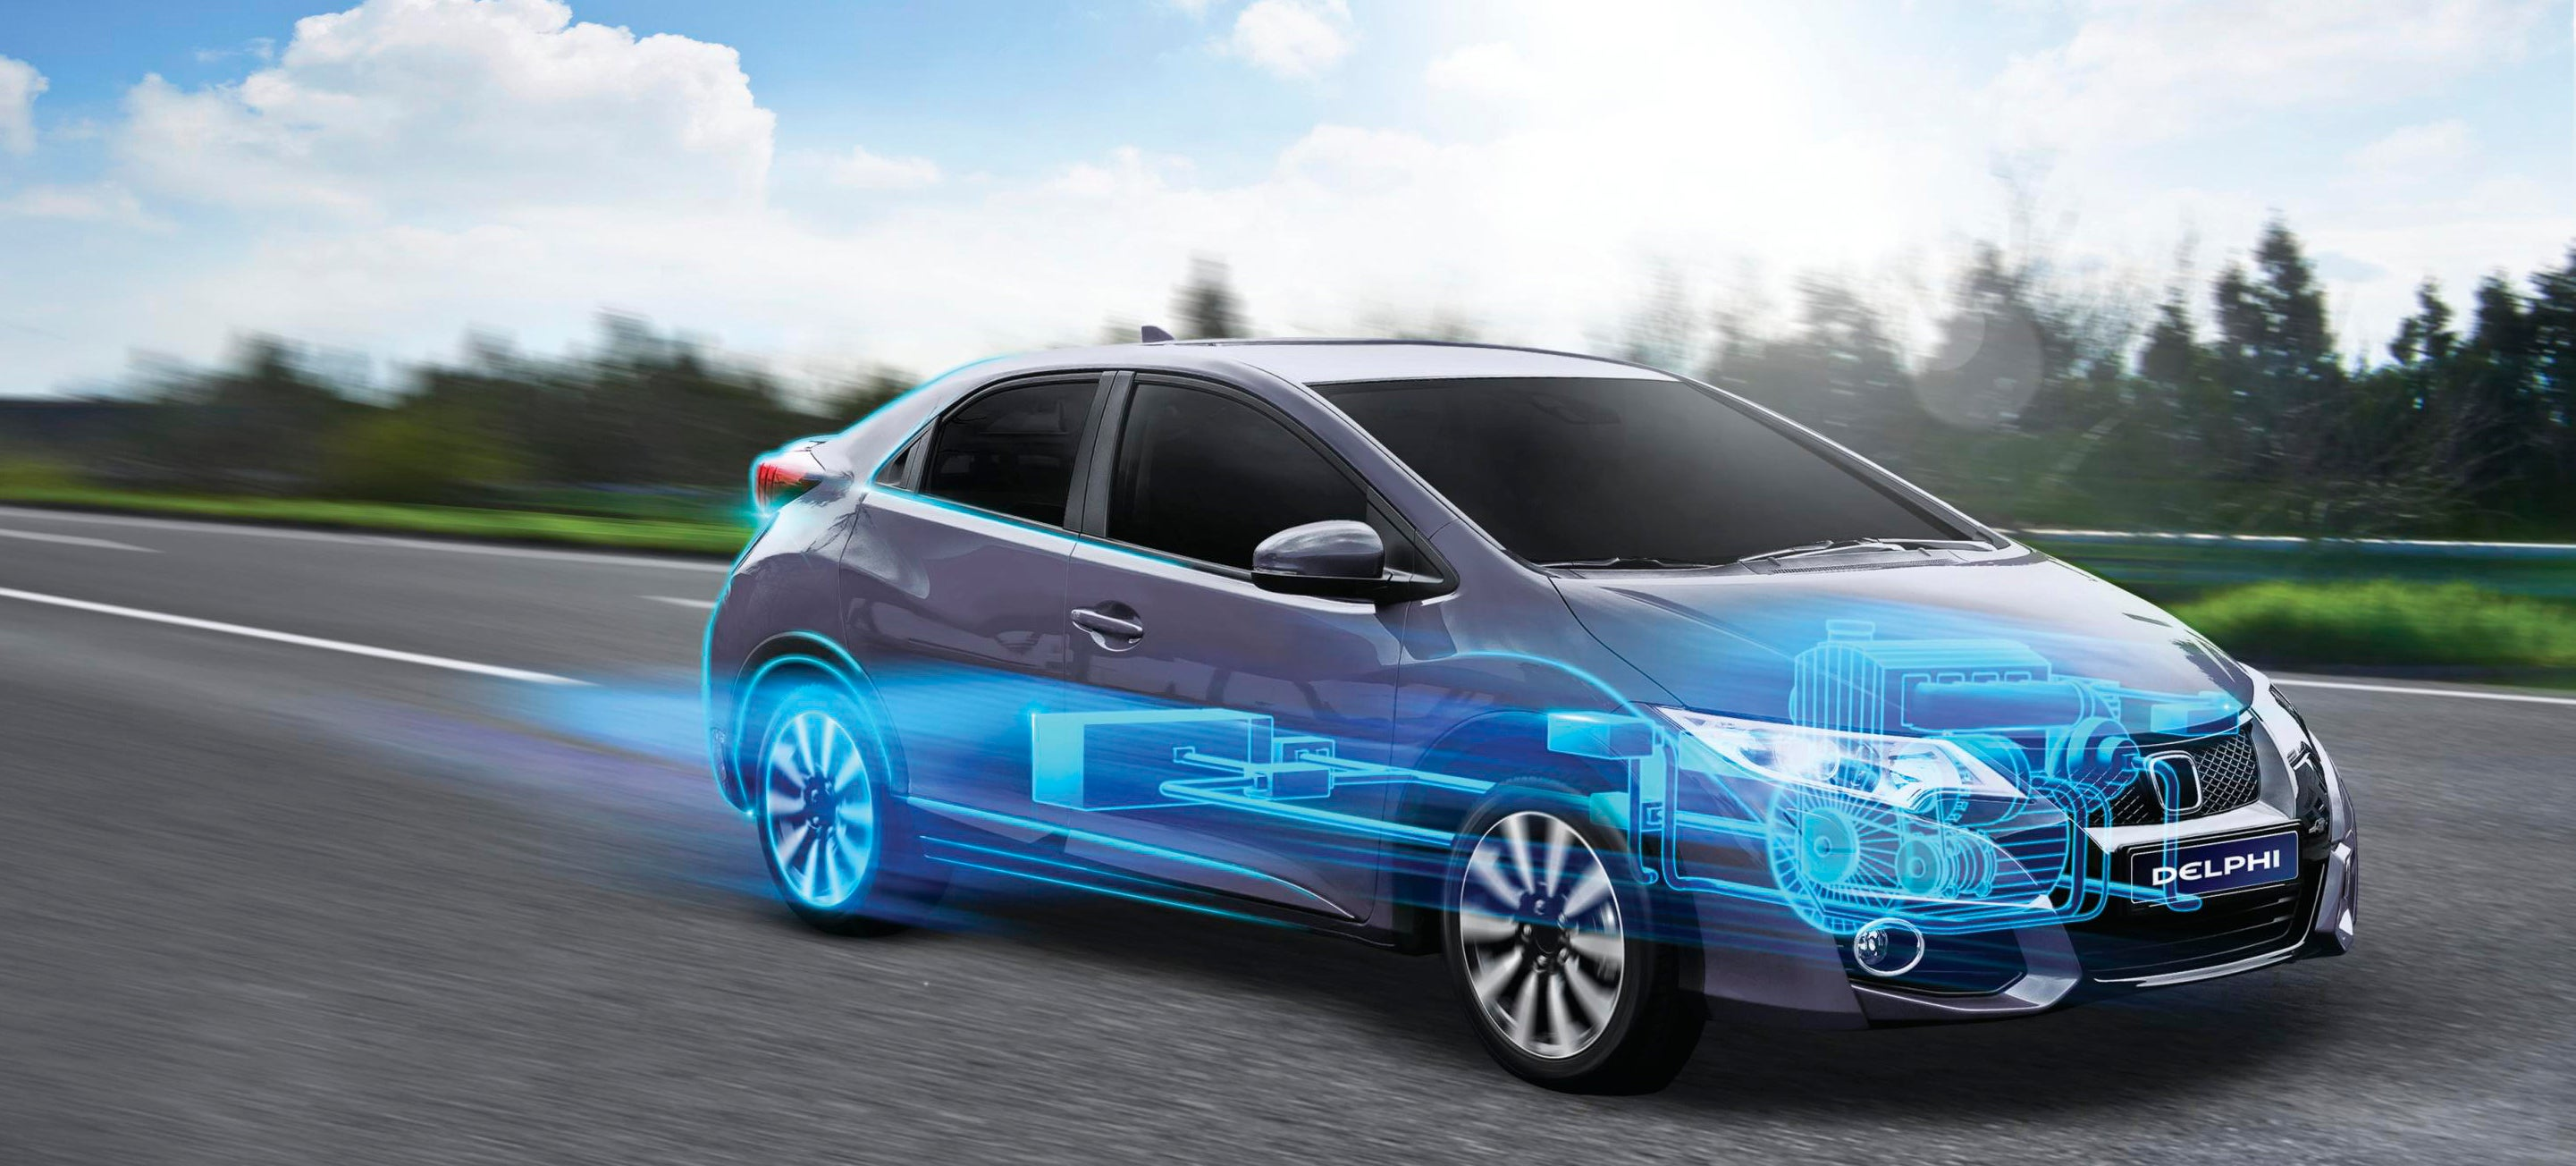 everything you need to know about the upcoming 48 volt electricaleverything you need to know about the upcoming 48 volt electrical revolution in cars